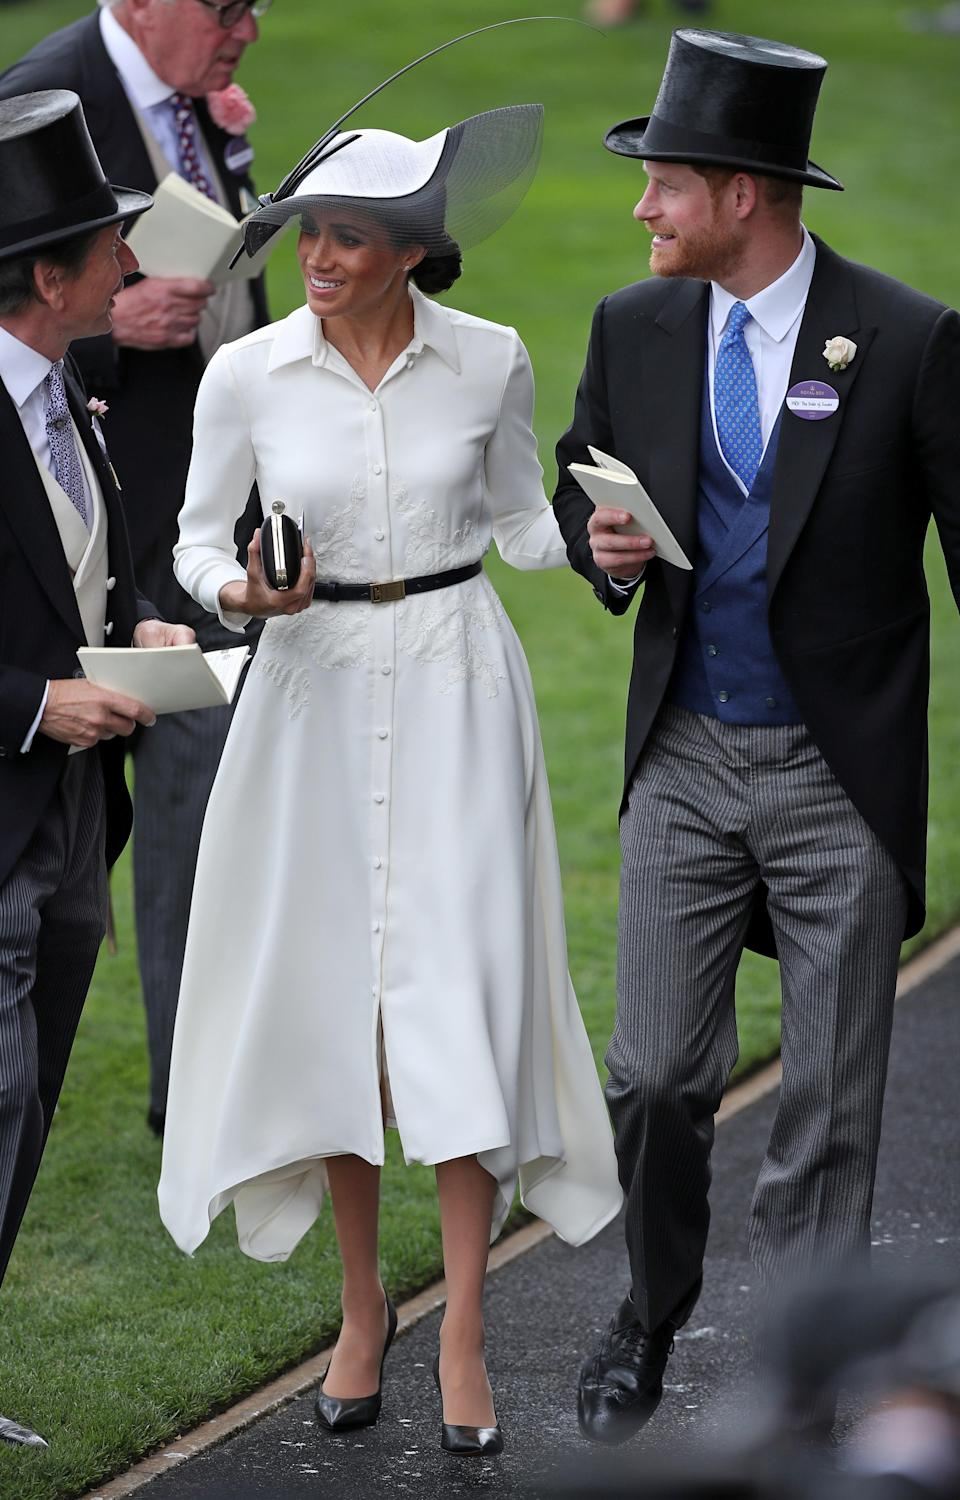 The Duchess of Sussex may have eschewed royal tradition in the run-up to the royal wedding but in recent weeks has gotten regal dressing down to a T [Photo: Getty]